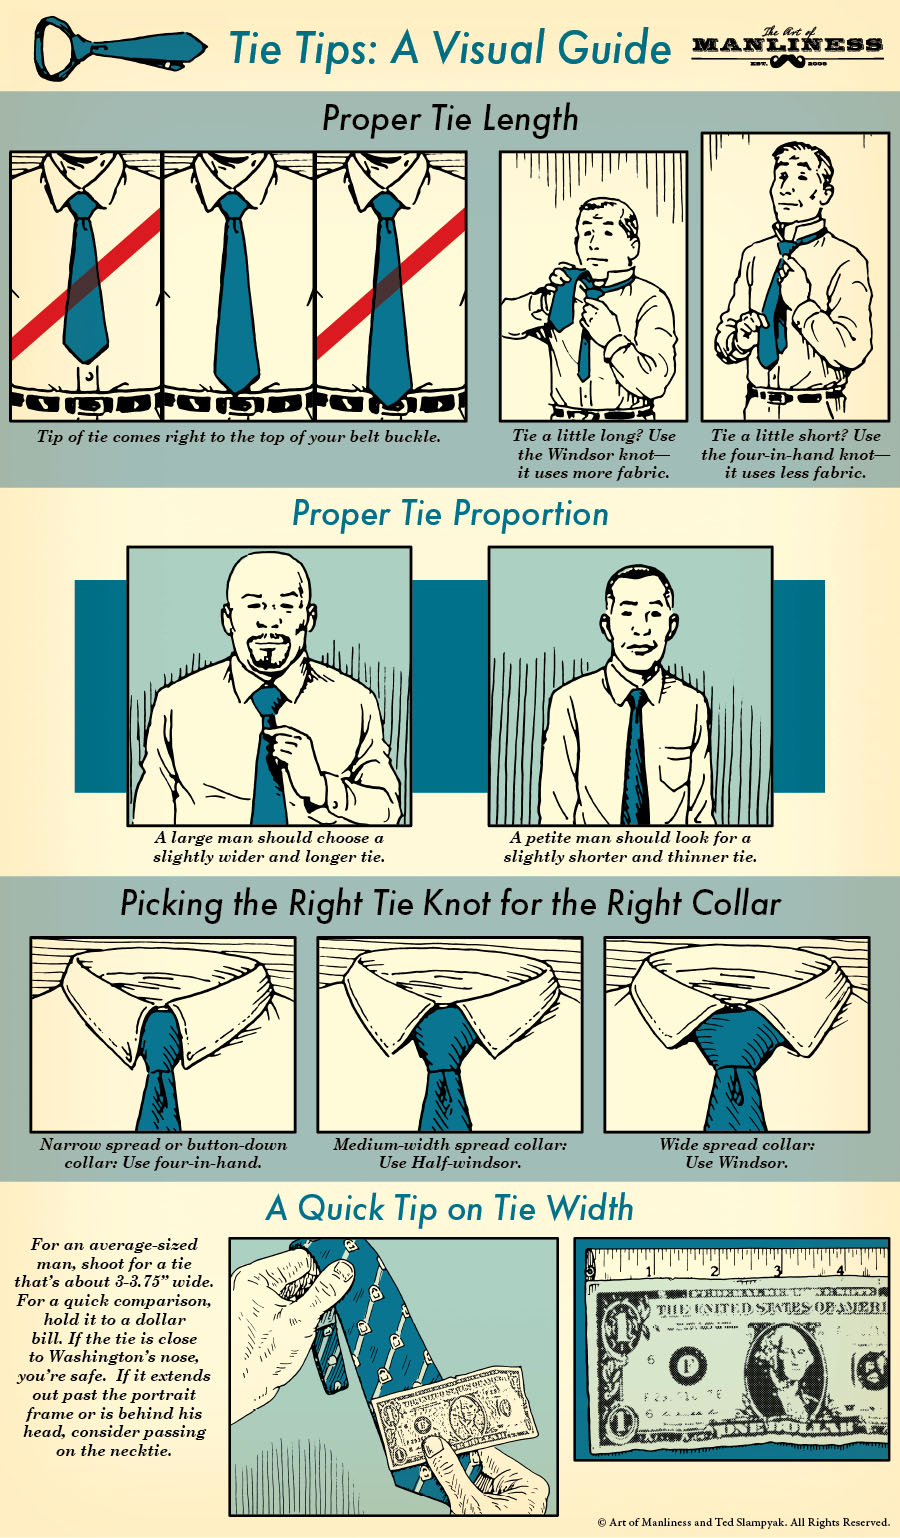 Necktie Tips for Men: An Illustrated Guide | The Art of Manliness